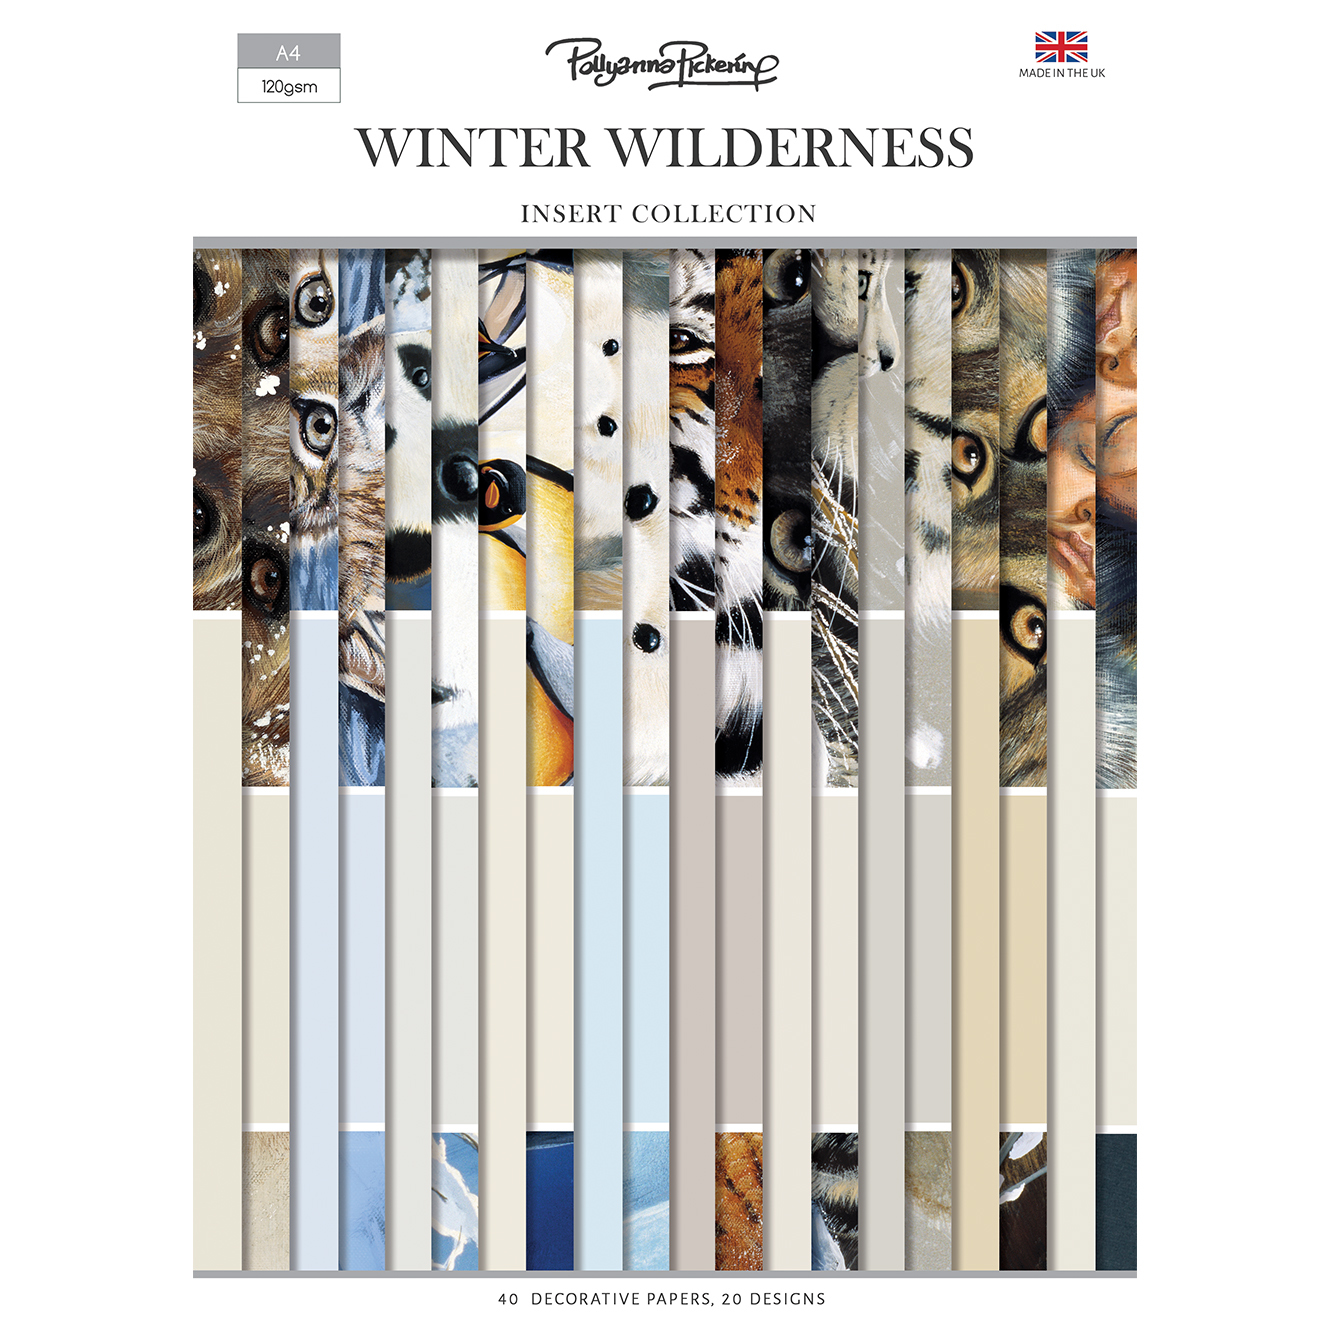 Pollyanna Pickering Winter Wilderness Inserts Collection